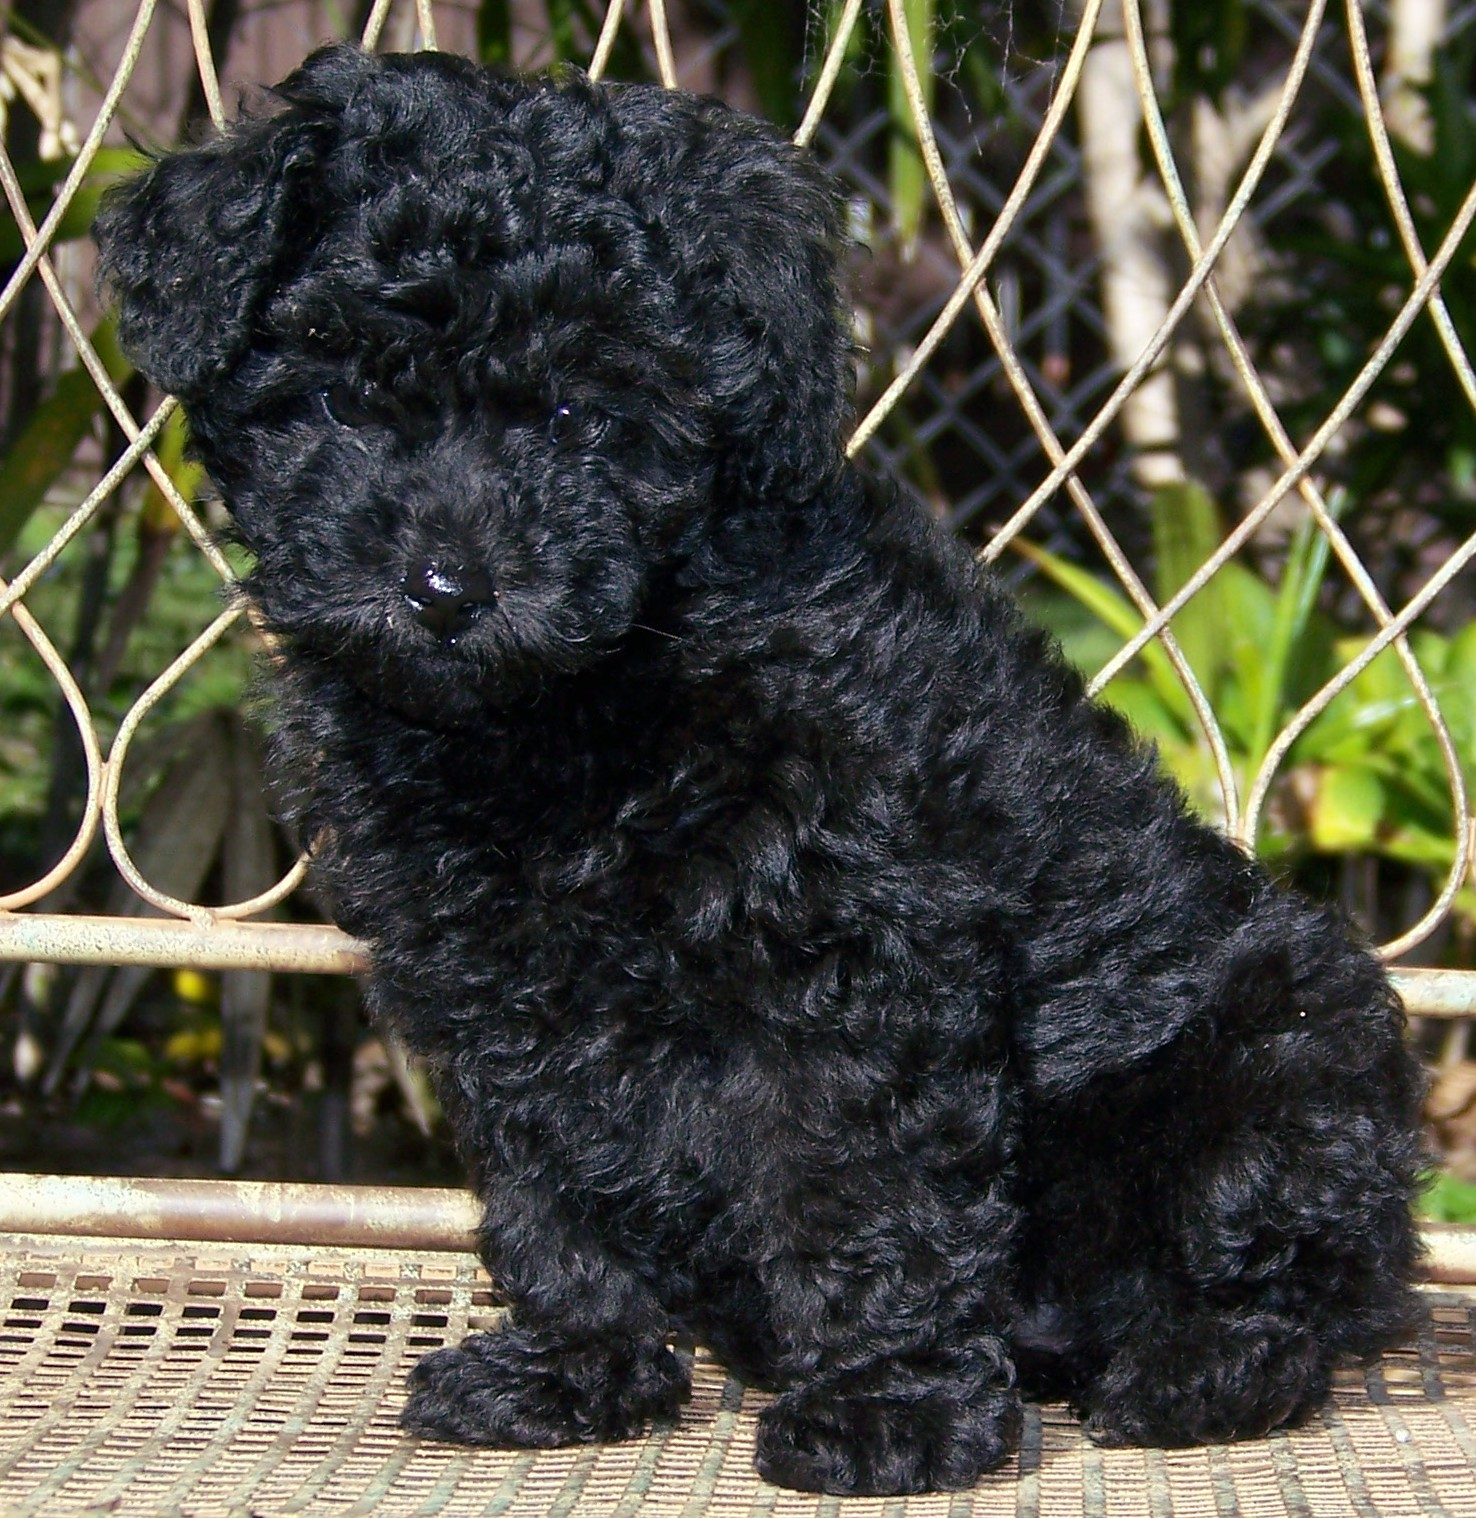 Description Miniature Poodle pup.JPG